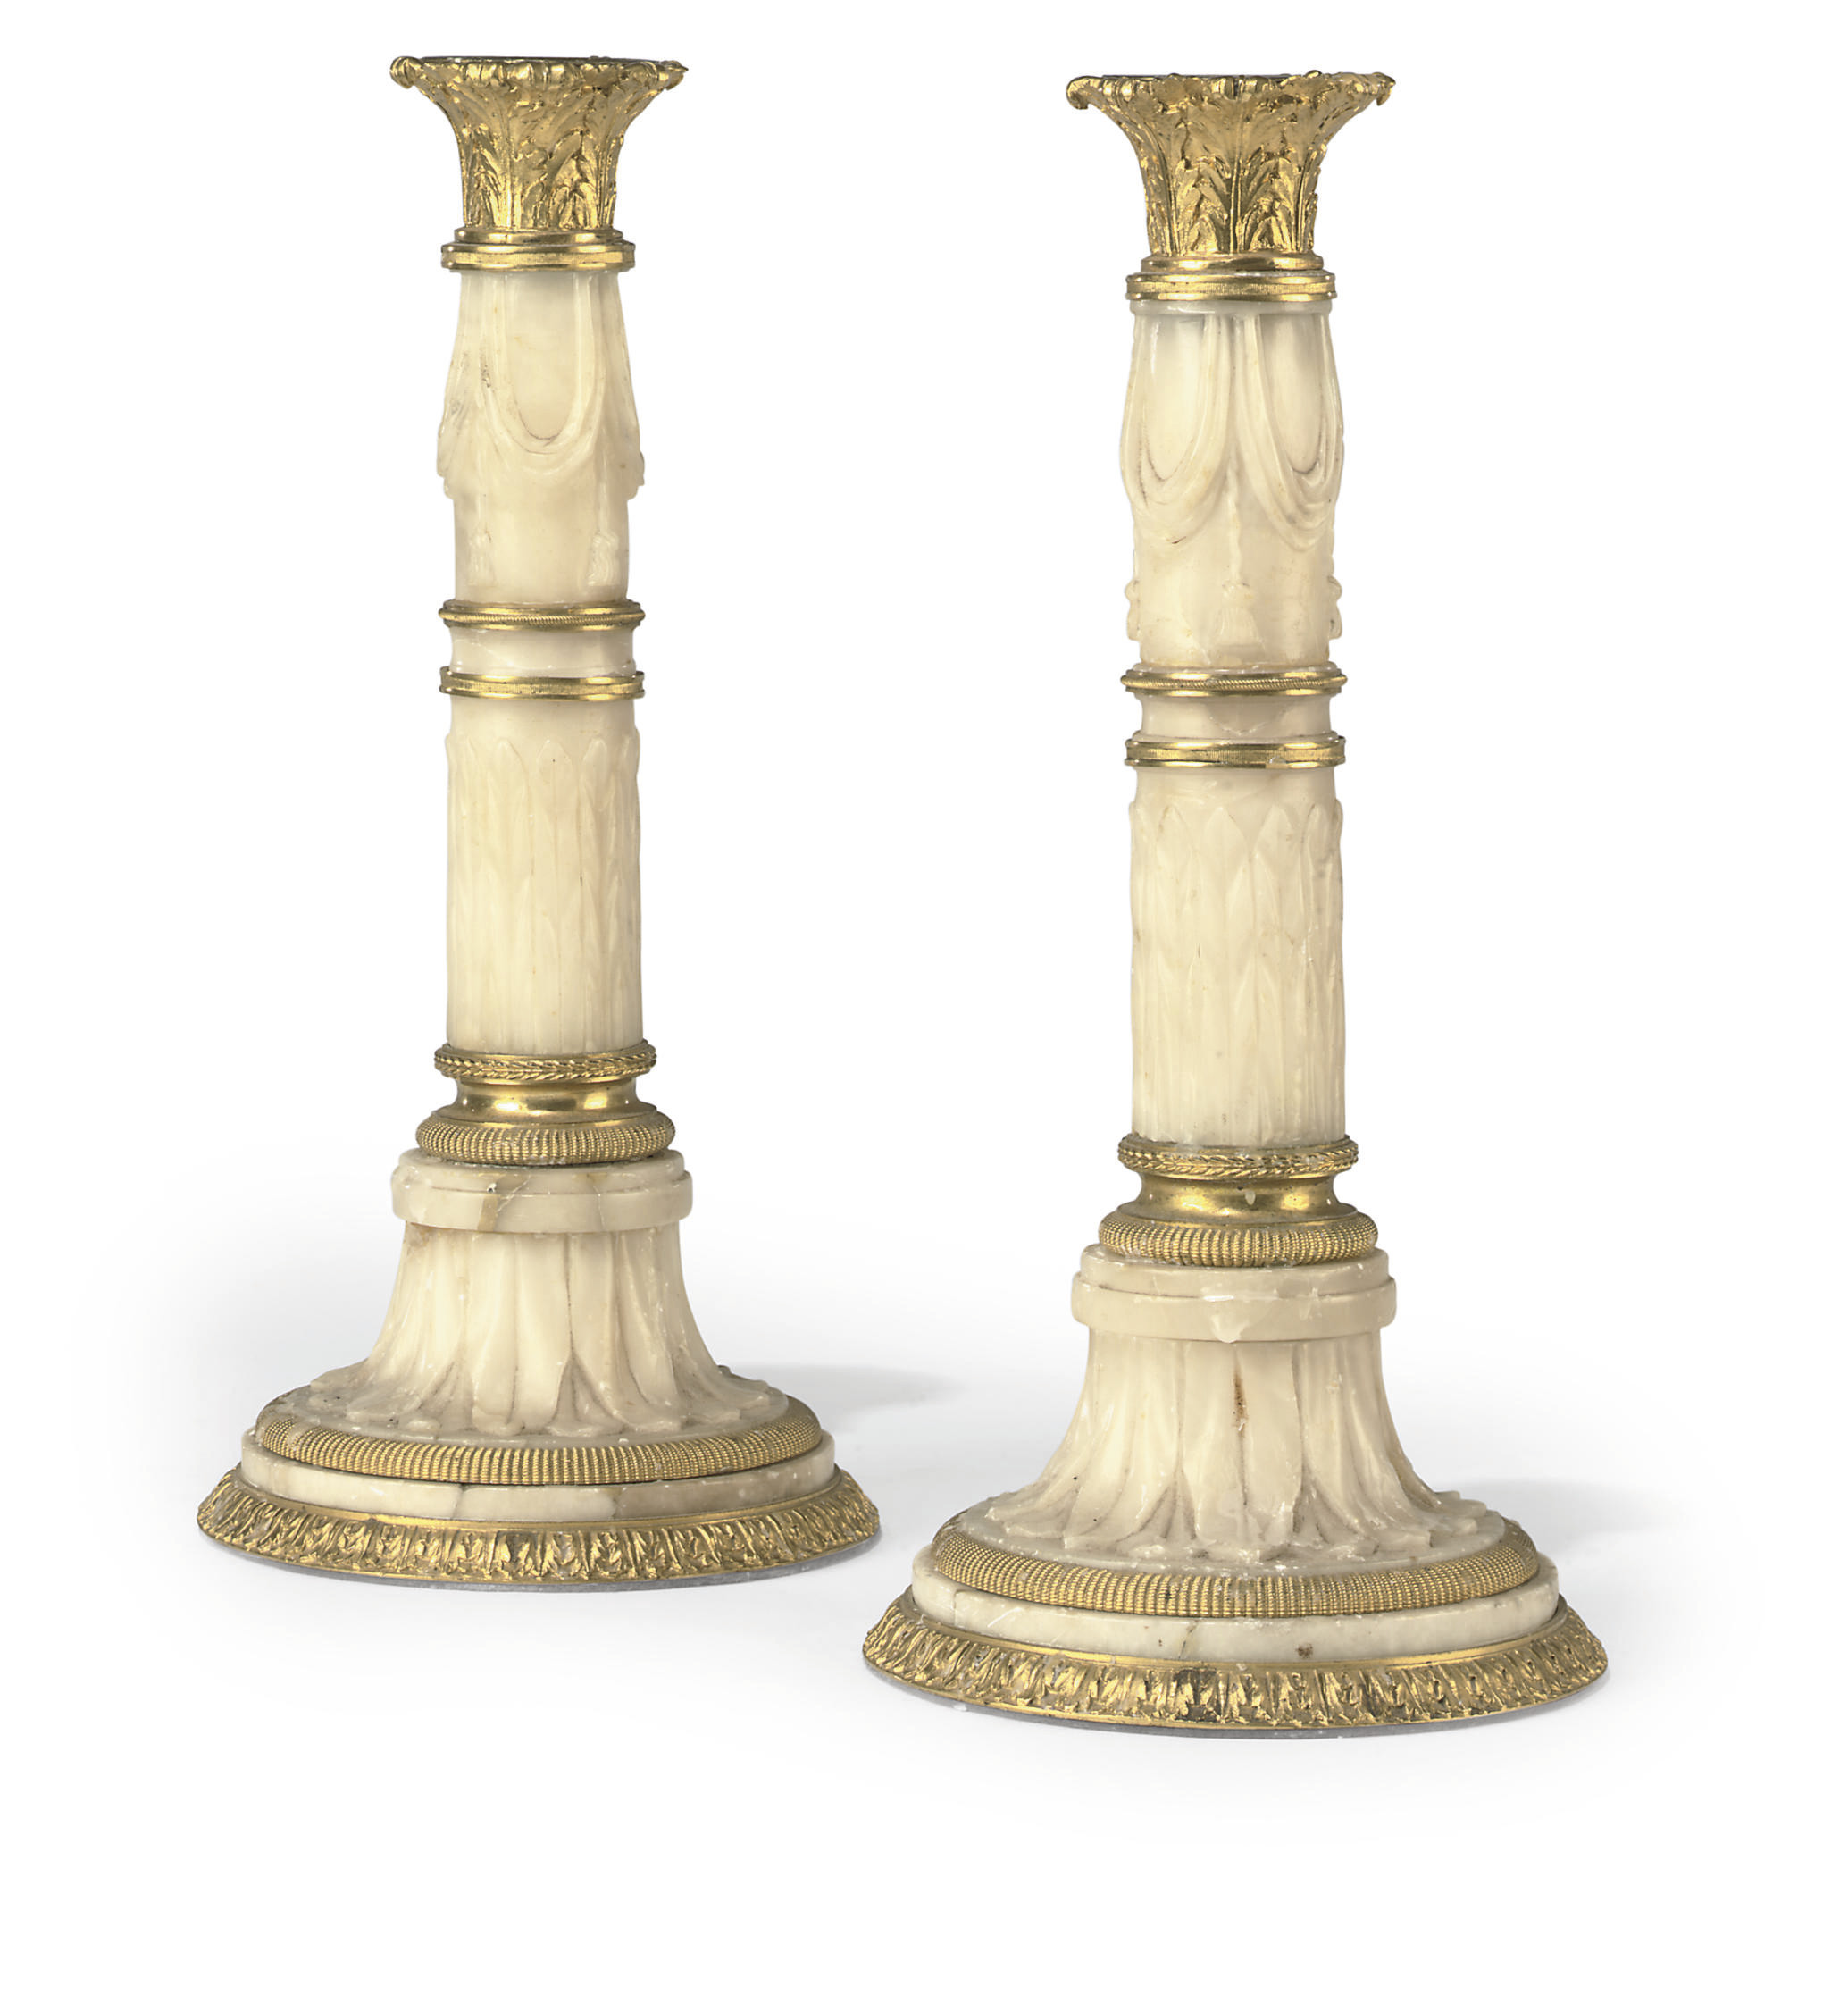 A PAIR OF ITALIAN ORMOLU-MOUNTED ALABASTER CANDLESTICKS